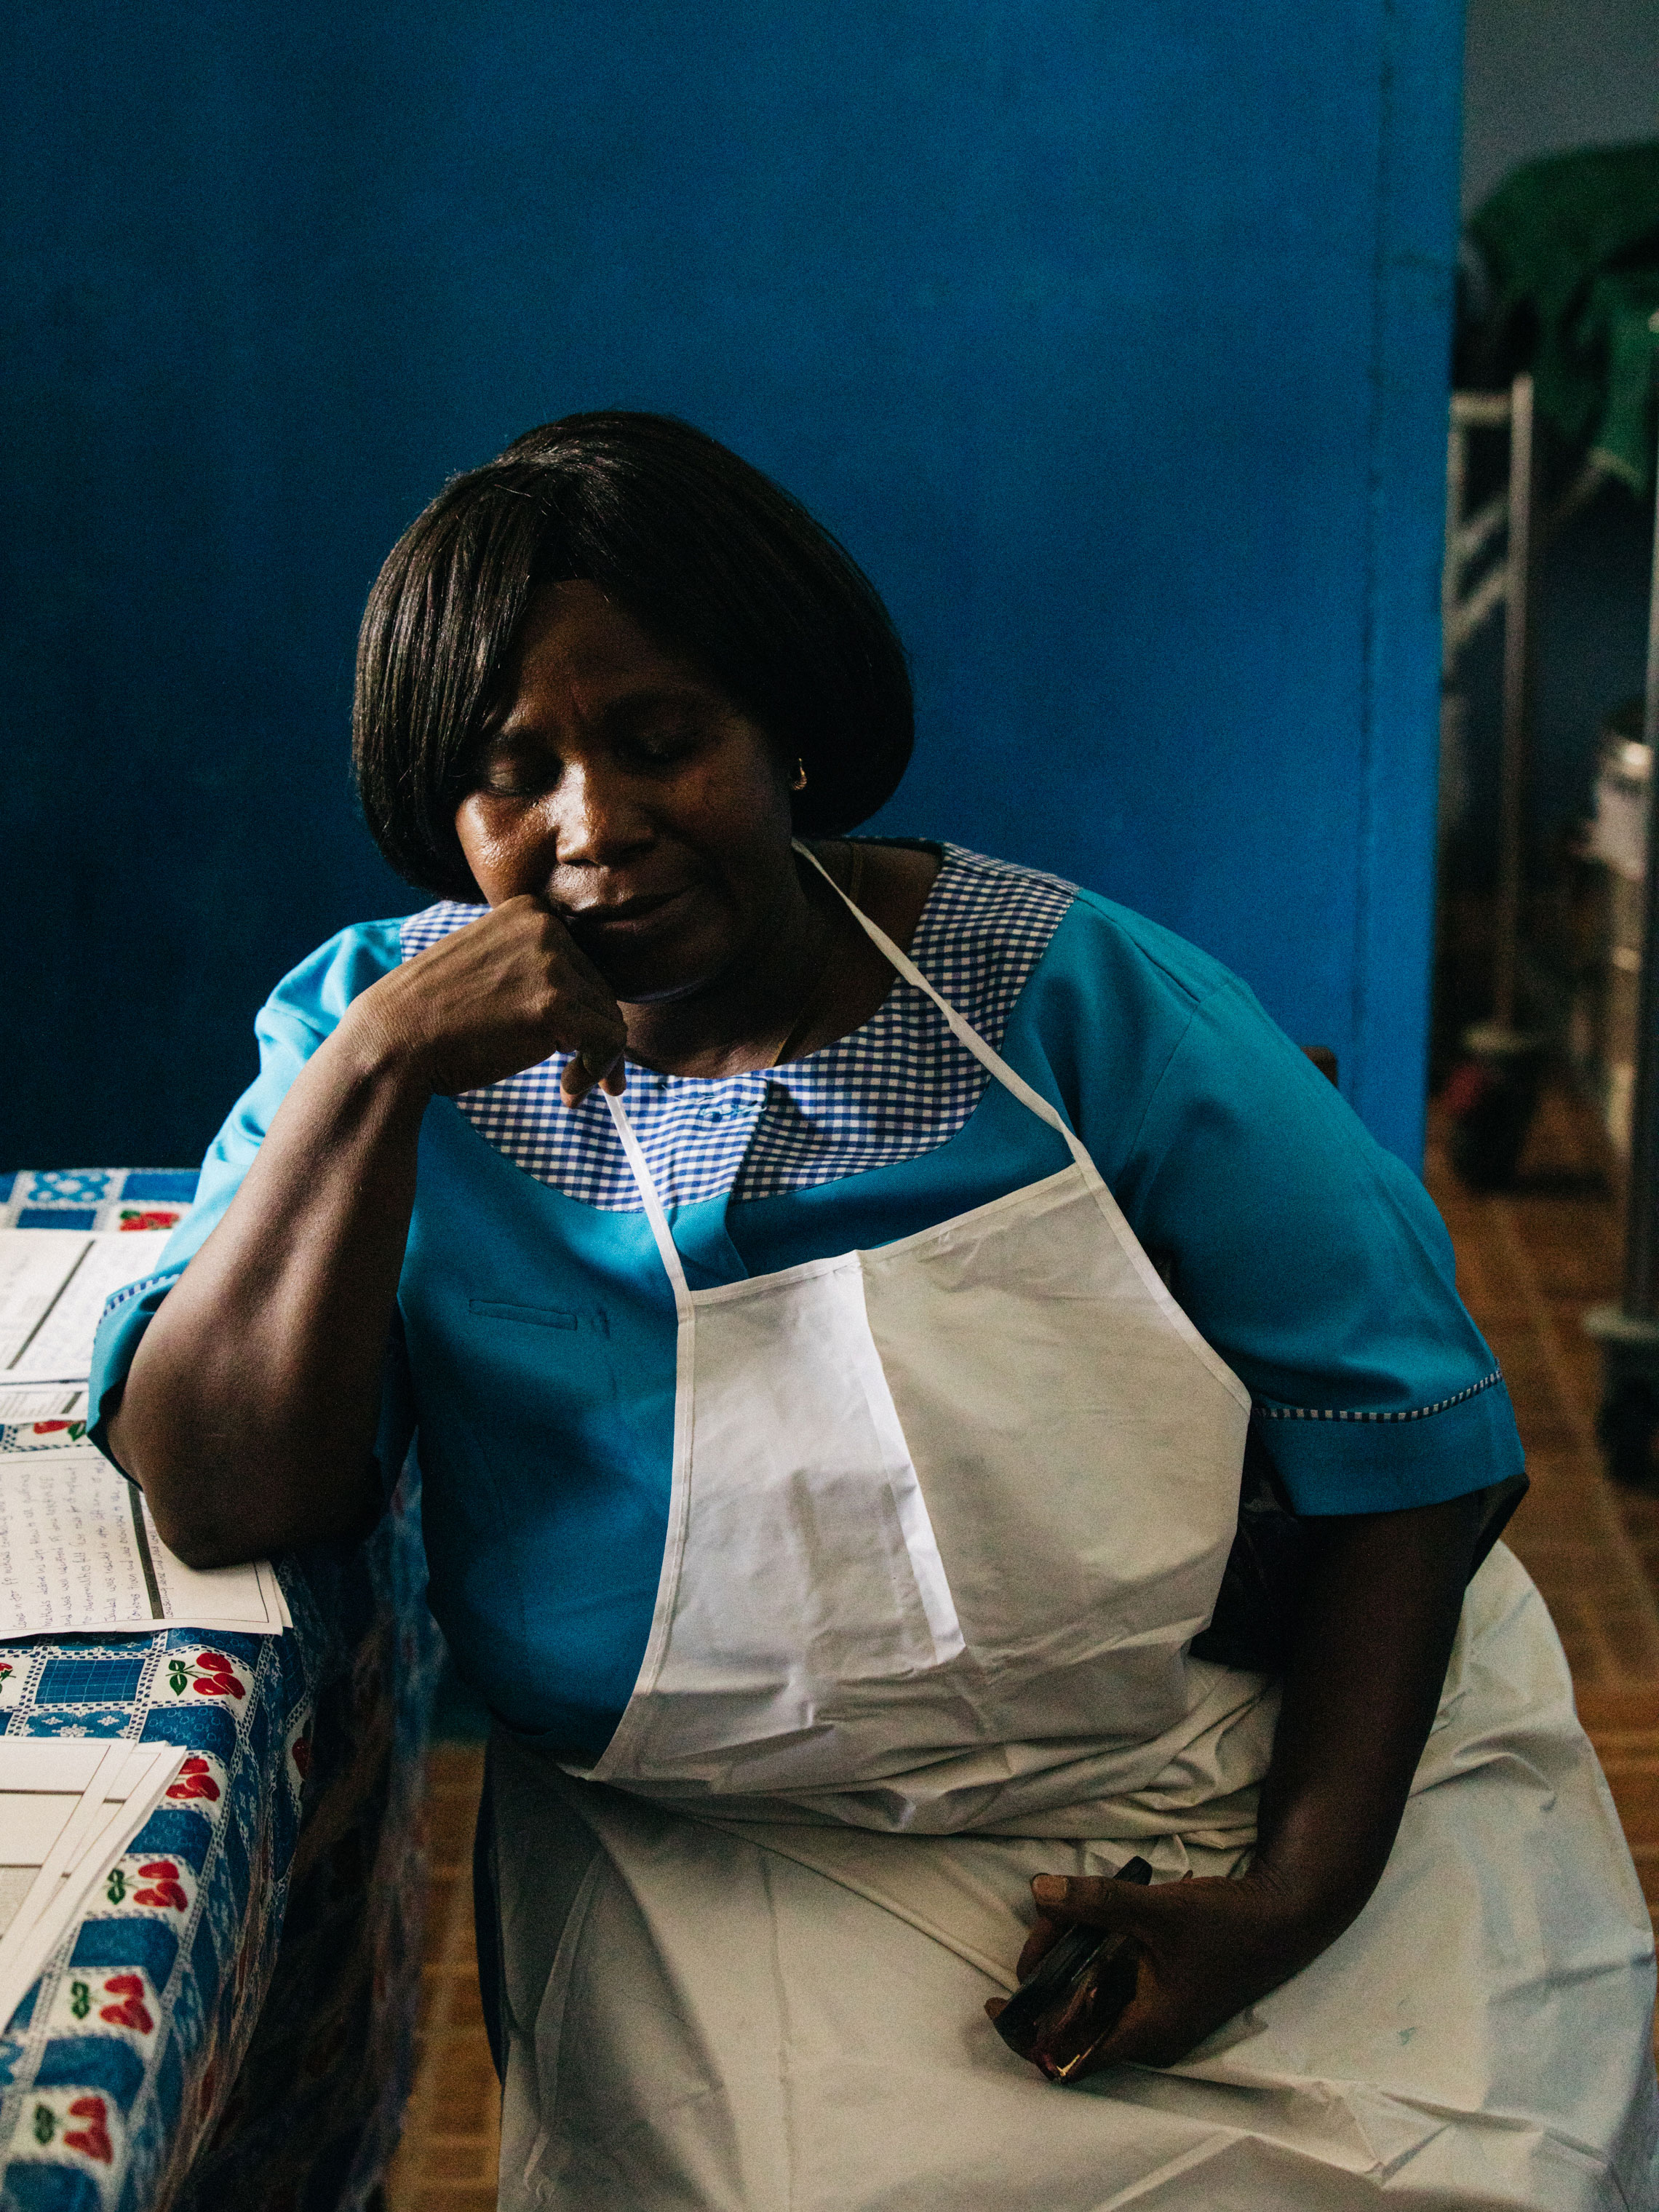 A nurse at Bonthe Hospital. The district – where nine doctors serve 200,000 people spread across several islands that are not easily reached – illustrates the extreme challenges facing maternal health in Sierra Leone. The nurse had spent the morning providing young women with contraceptive implants.